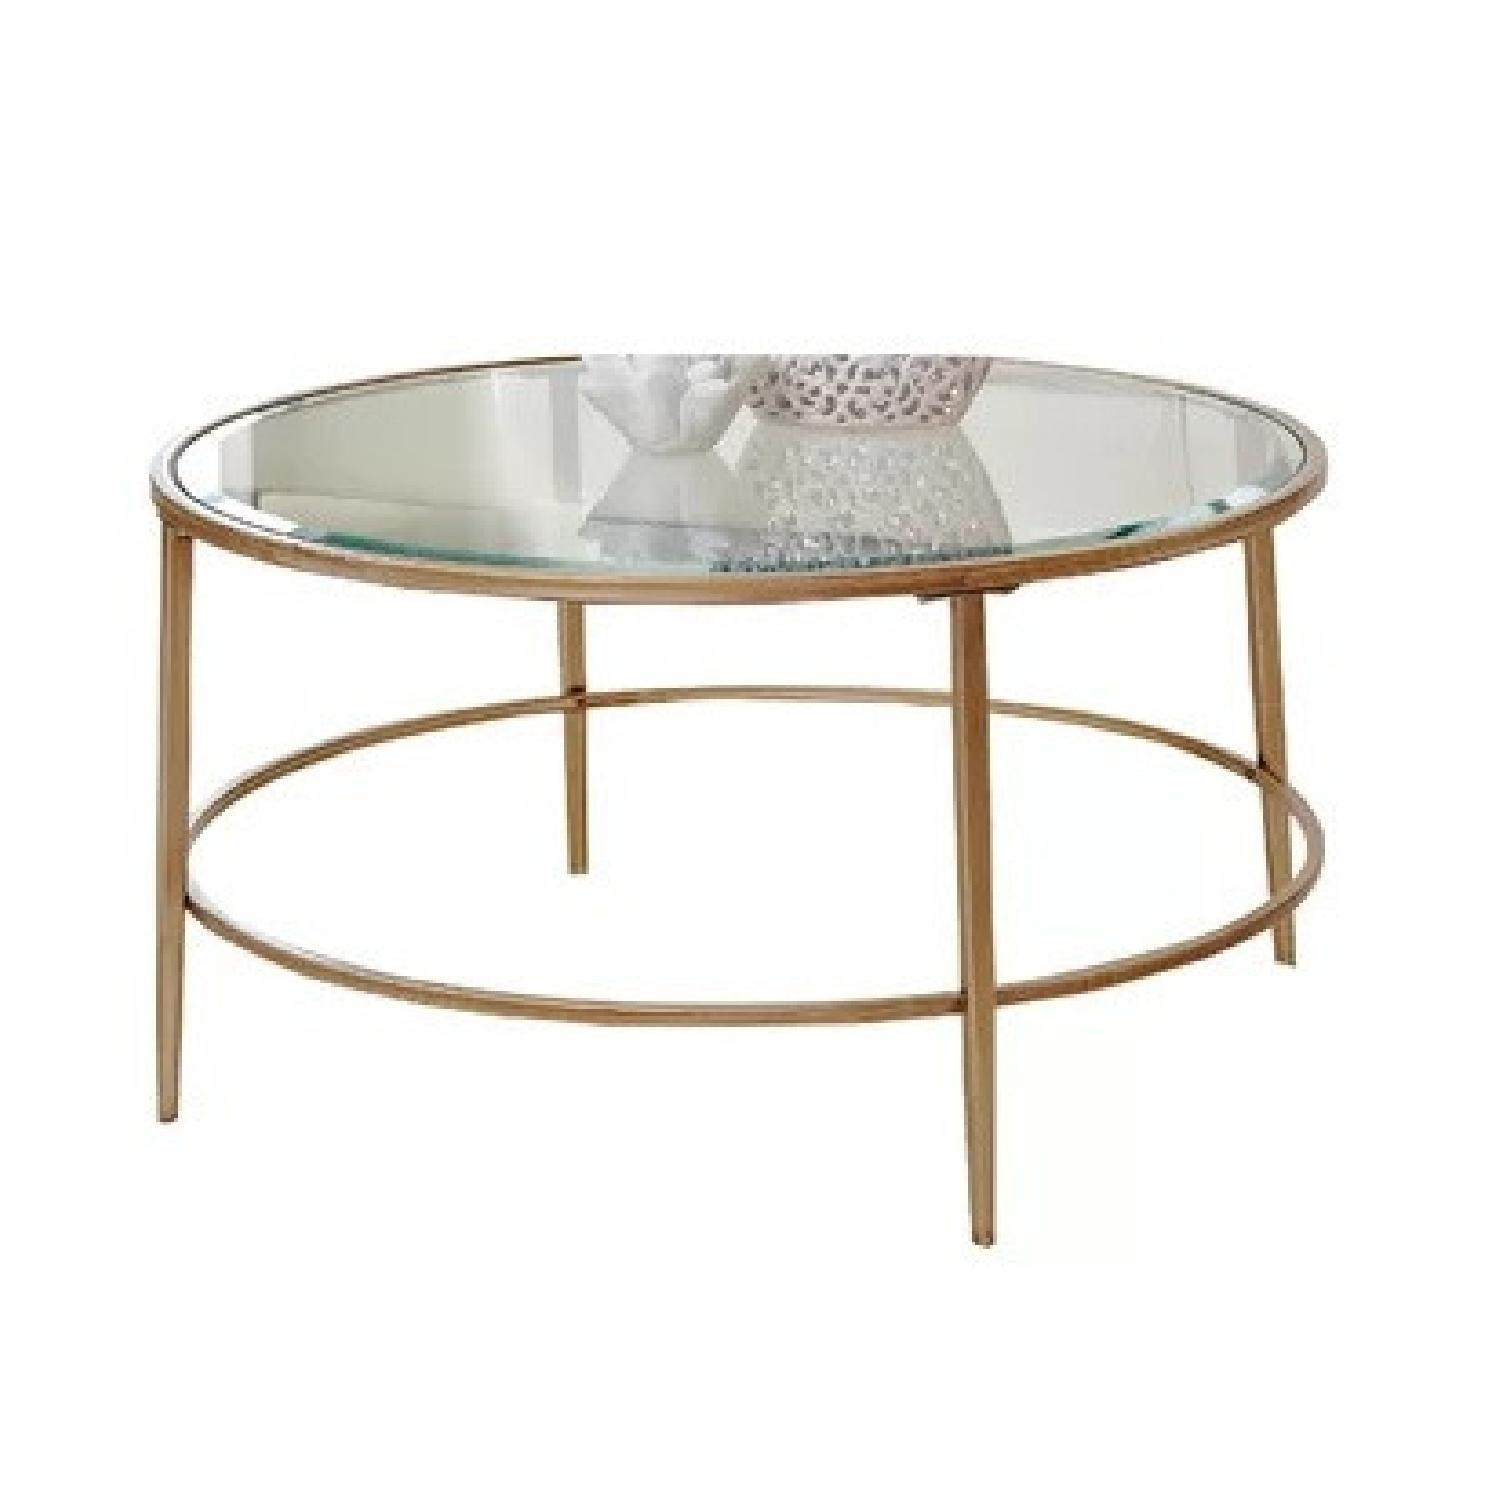 Birch Lane Heritage Round Glass & Gold Coffee Table - image-1